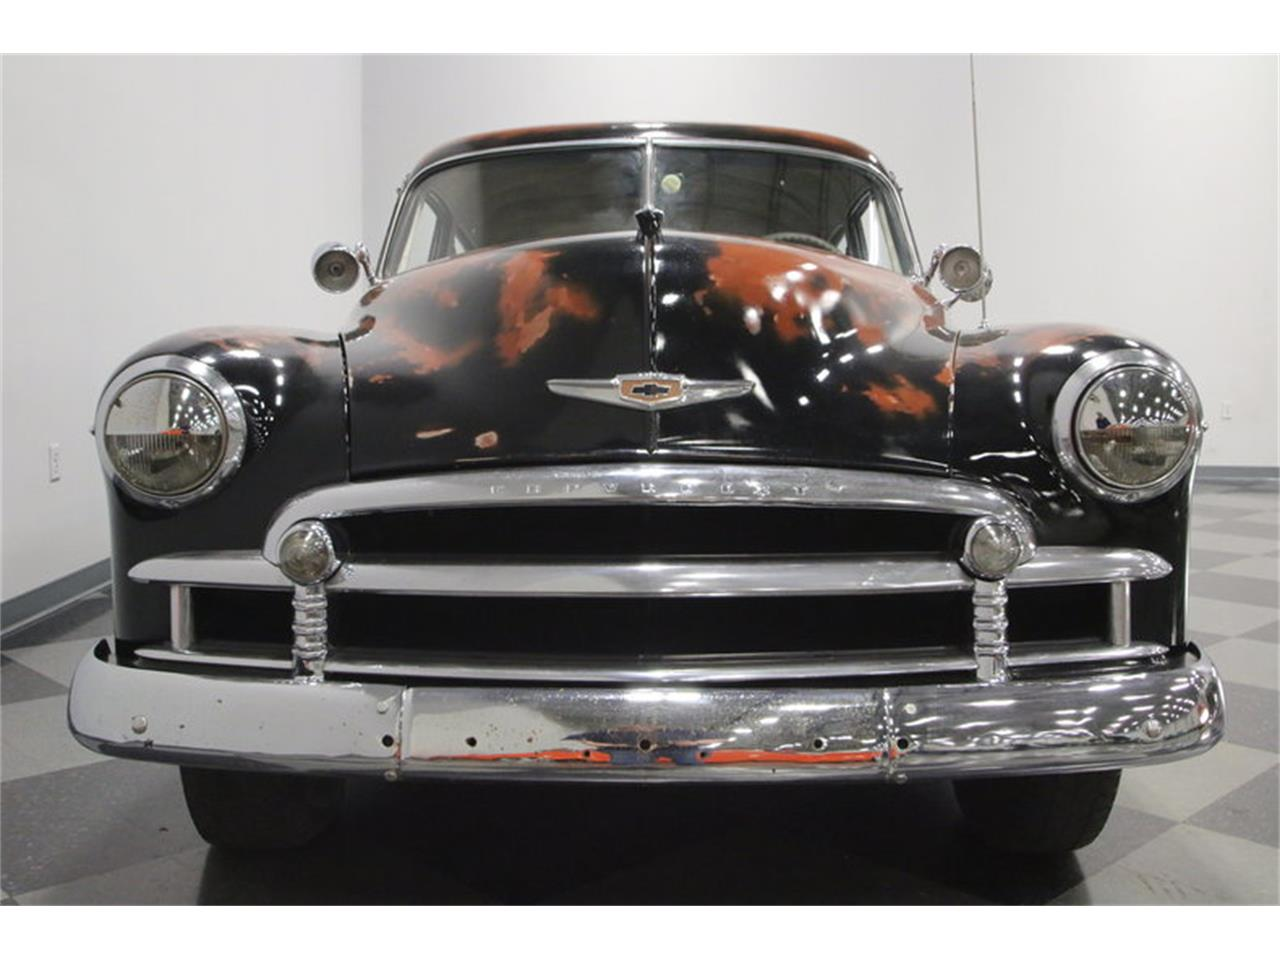 Large Picture of '50 Chevrolet Styleline Deluxe located in Lavergne Tennessee Offered by Streetside Classics - Nashville - MZSM